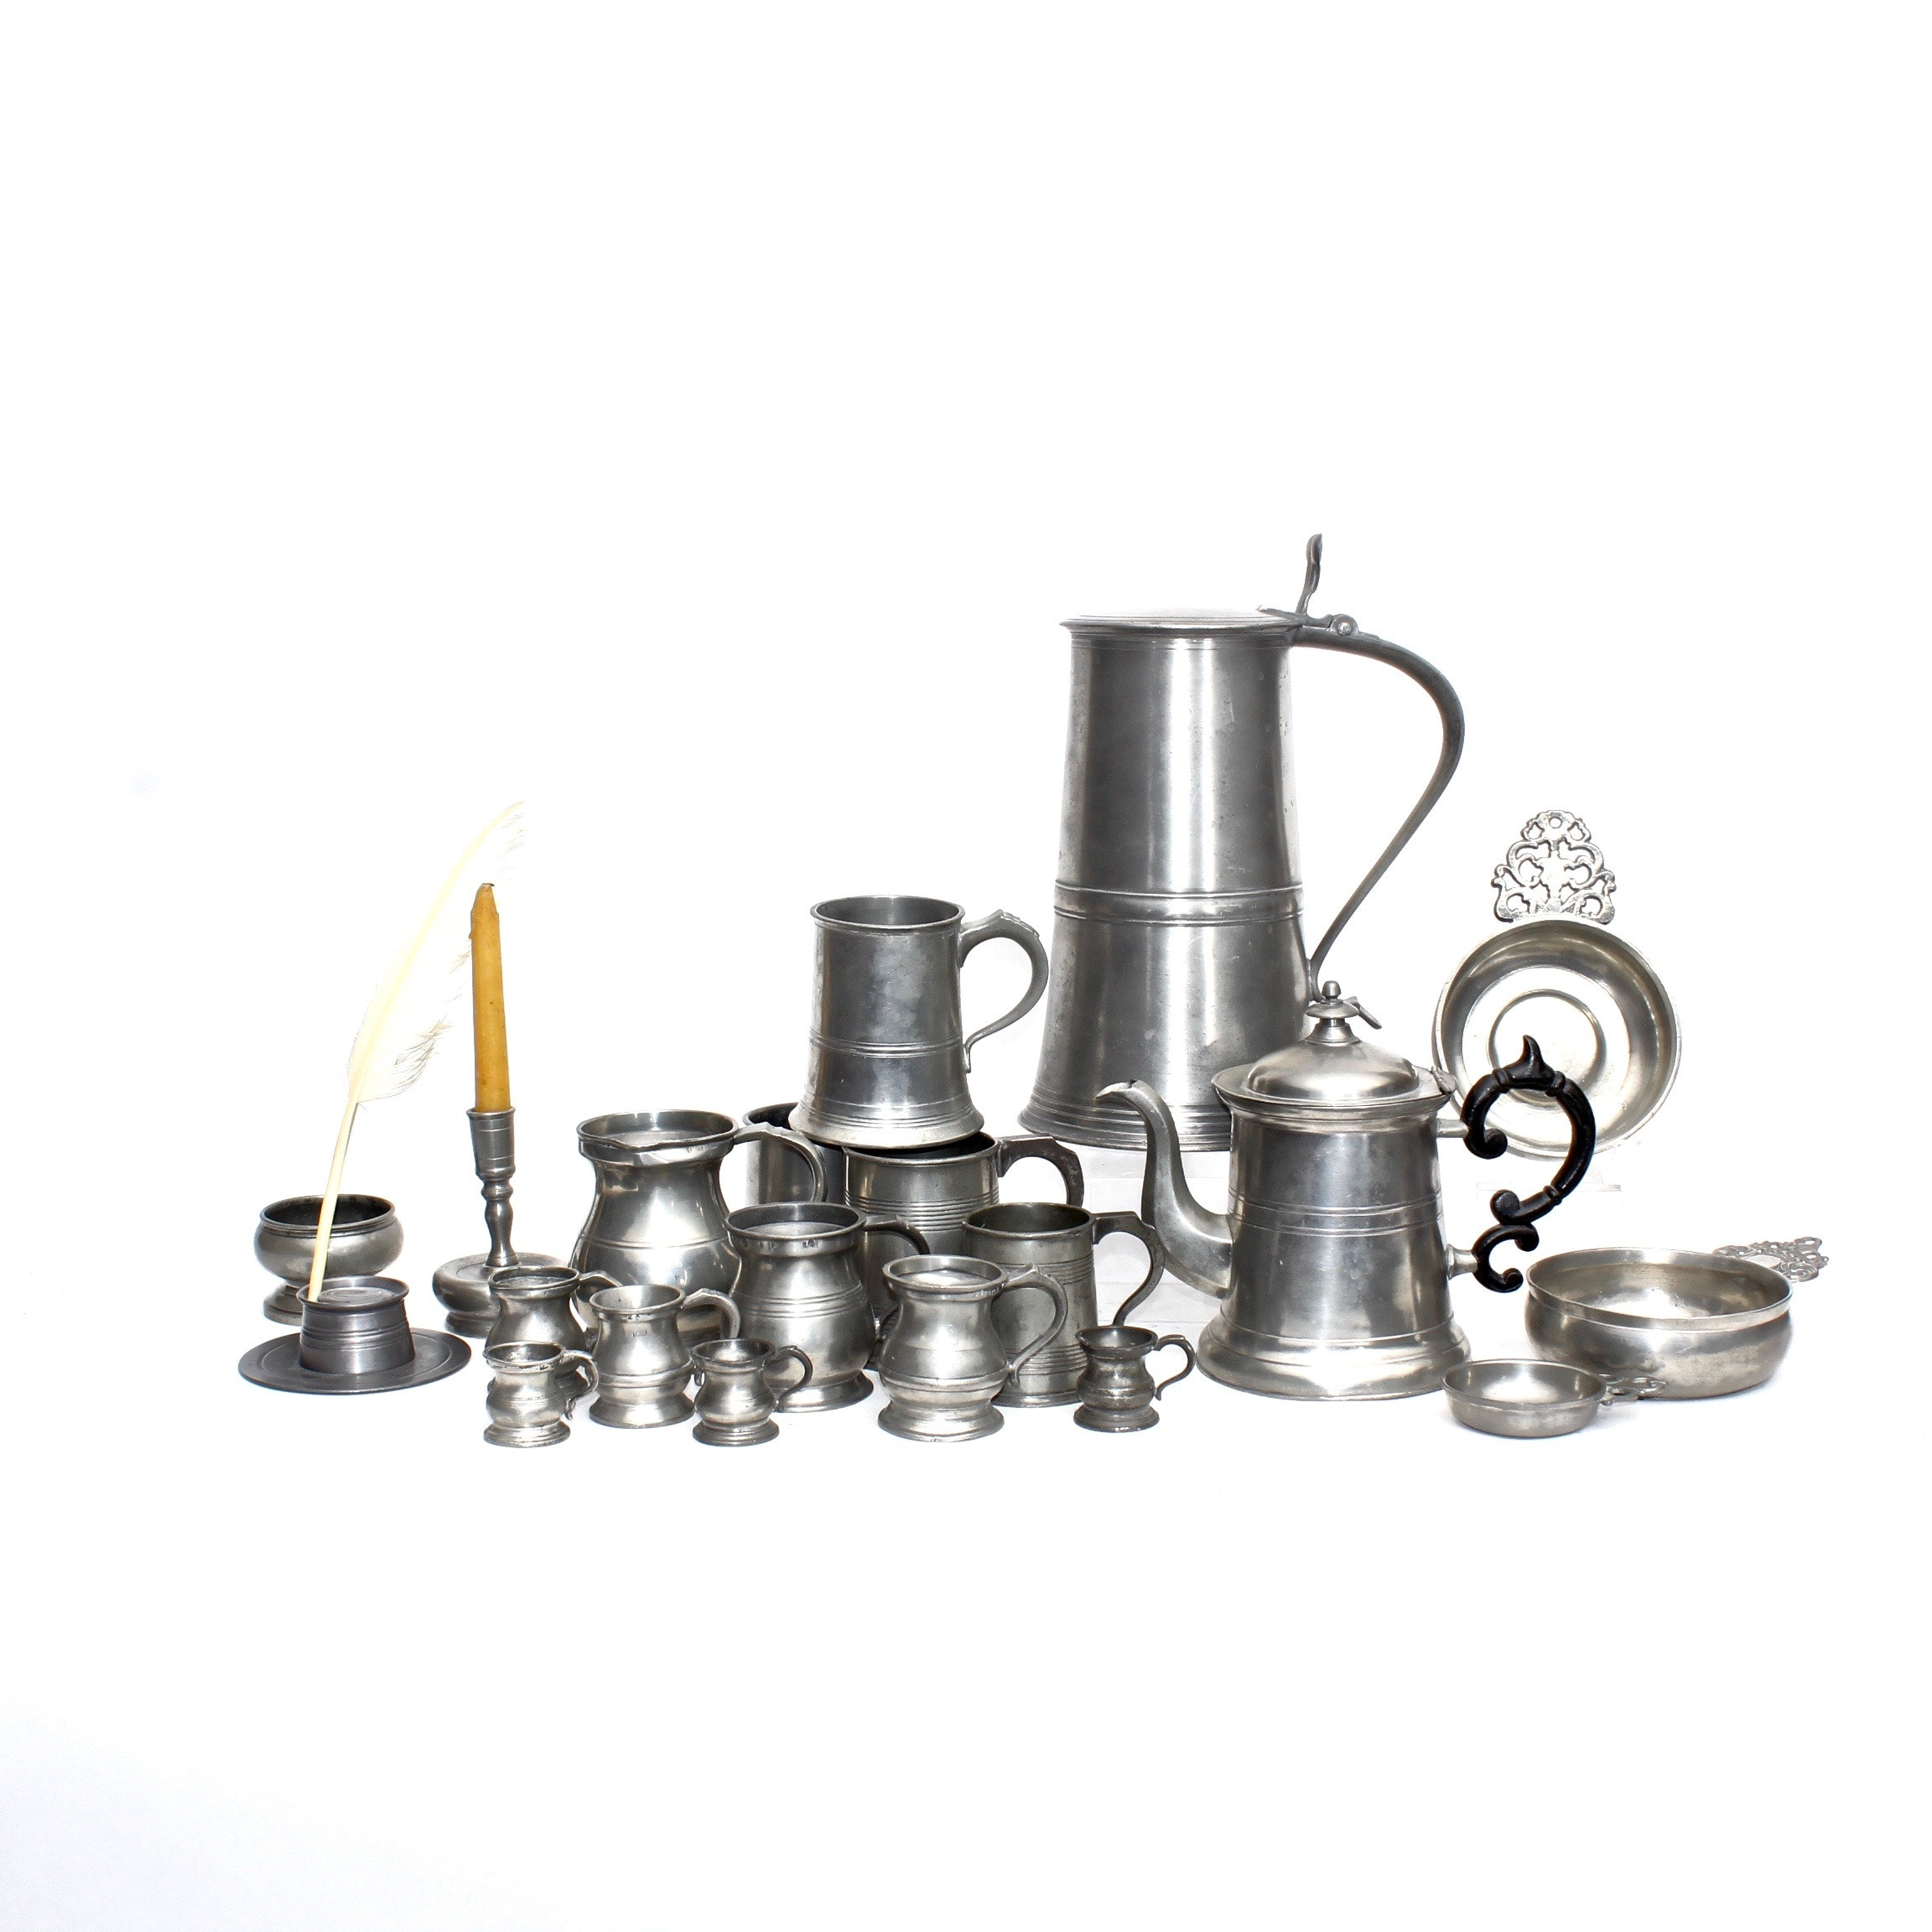 Pewter Mugs, Tableware and Inkwell with Quill, Antique